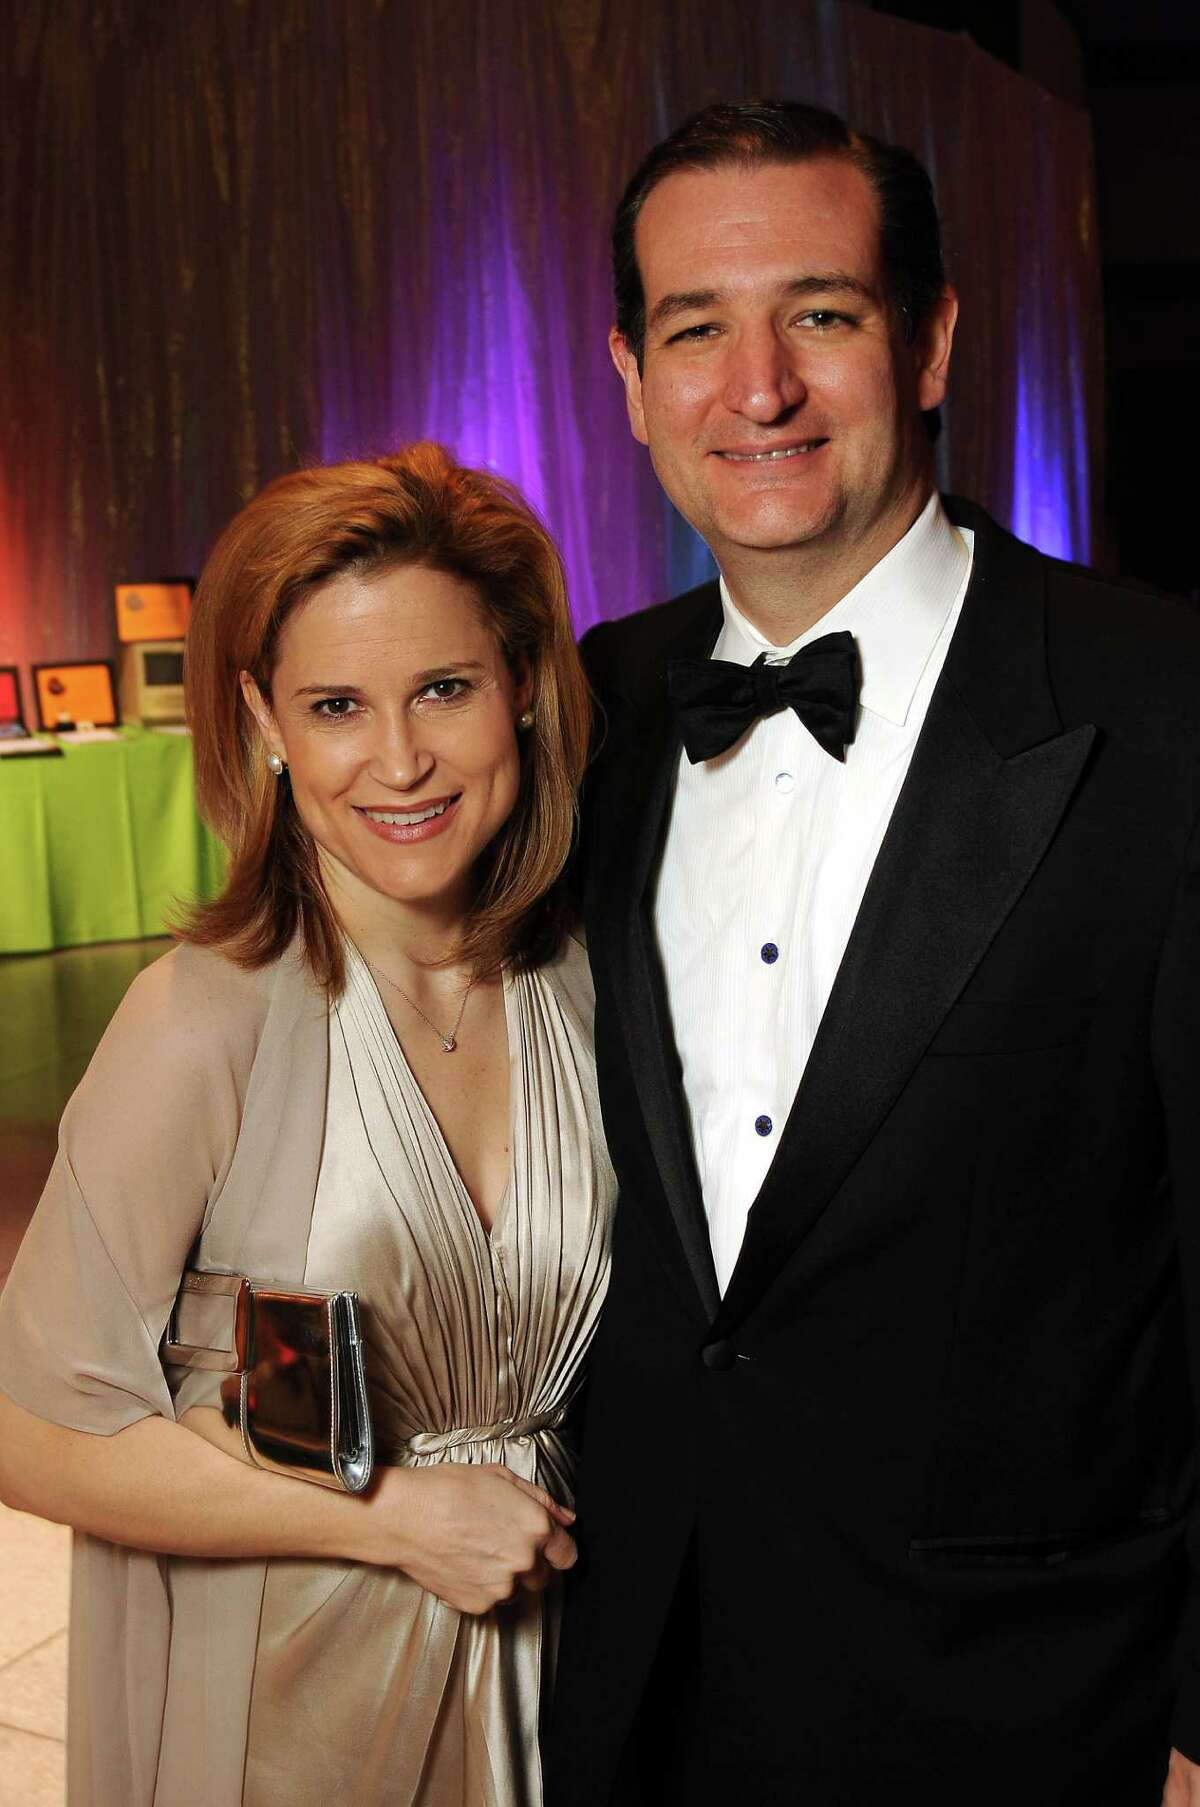 Heidi Cruz graduated from Harvard with an MBA. She met Ted Cruz while working on the George W. Bush campaign in 2000.